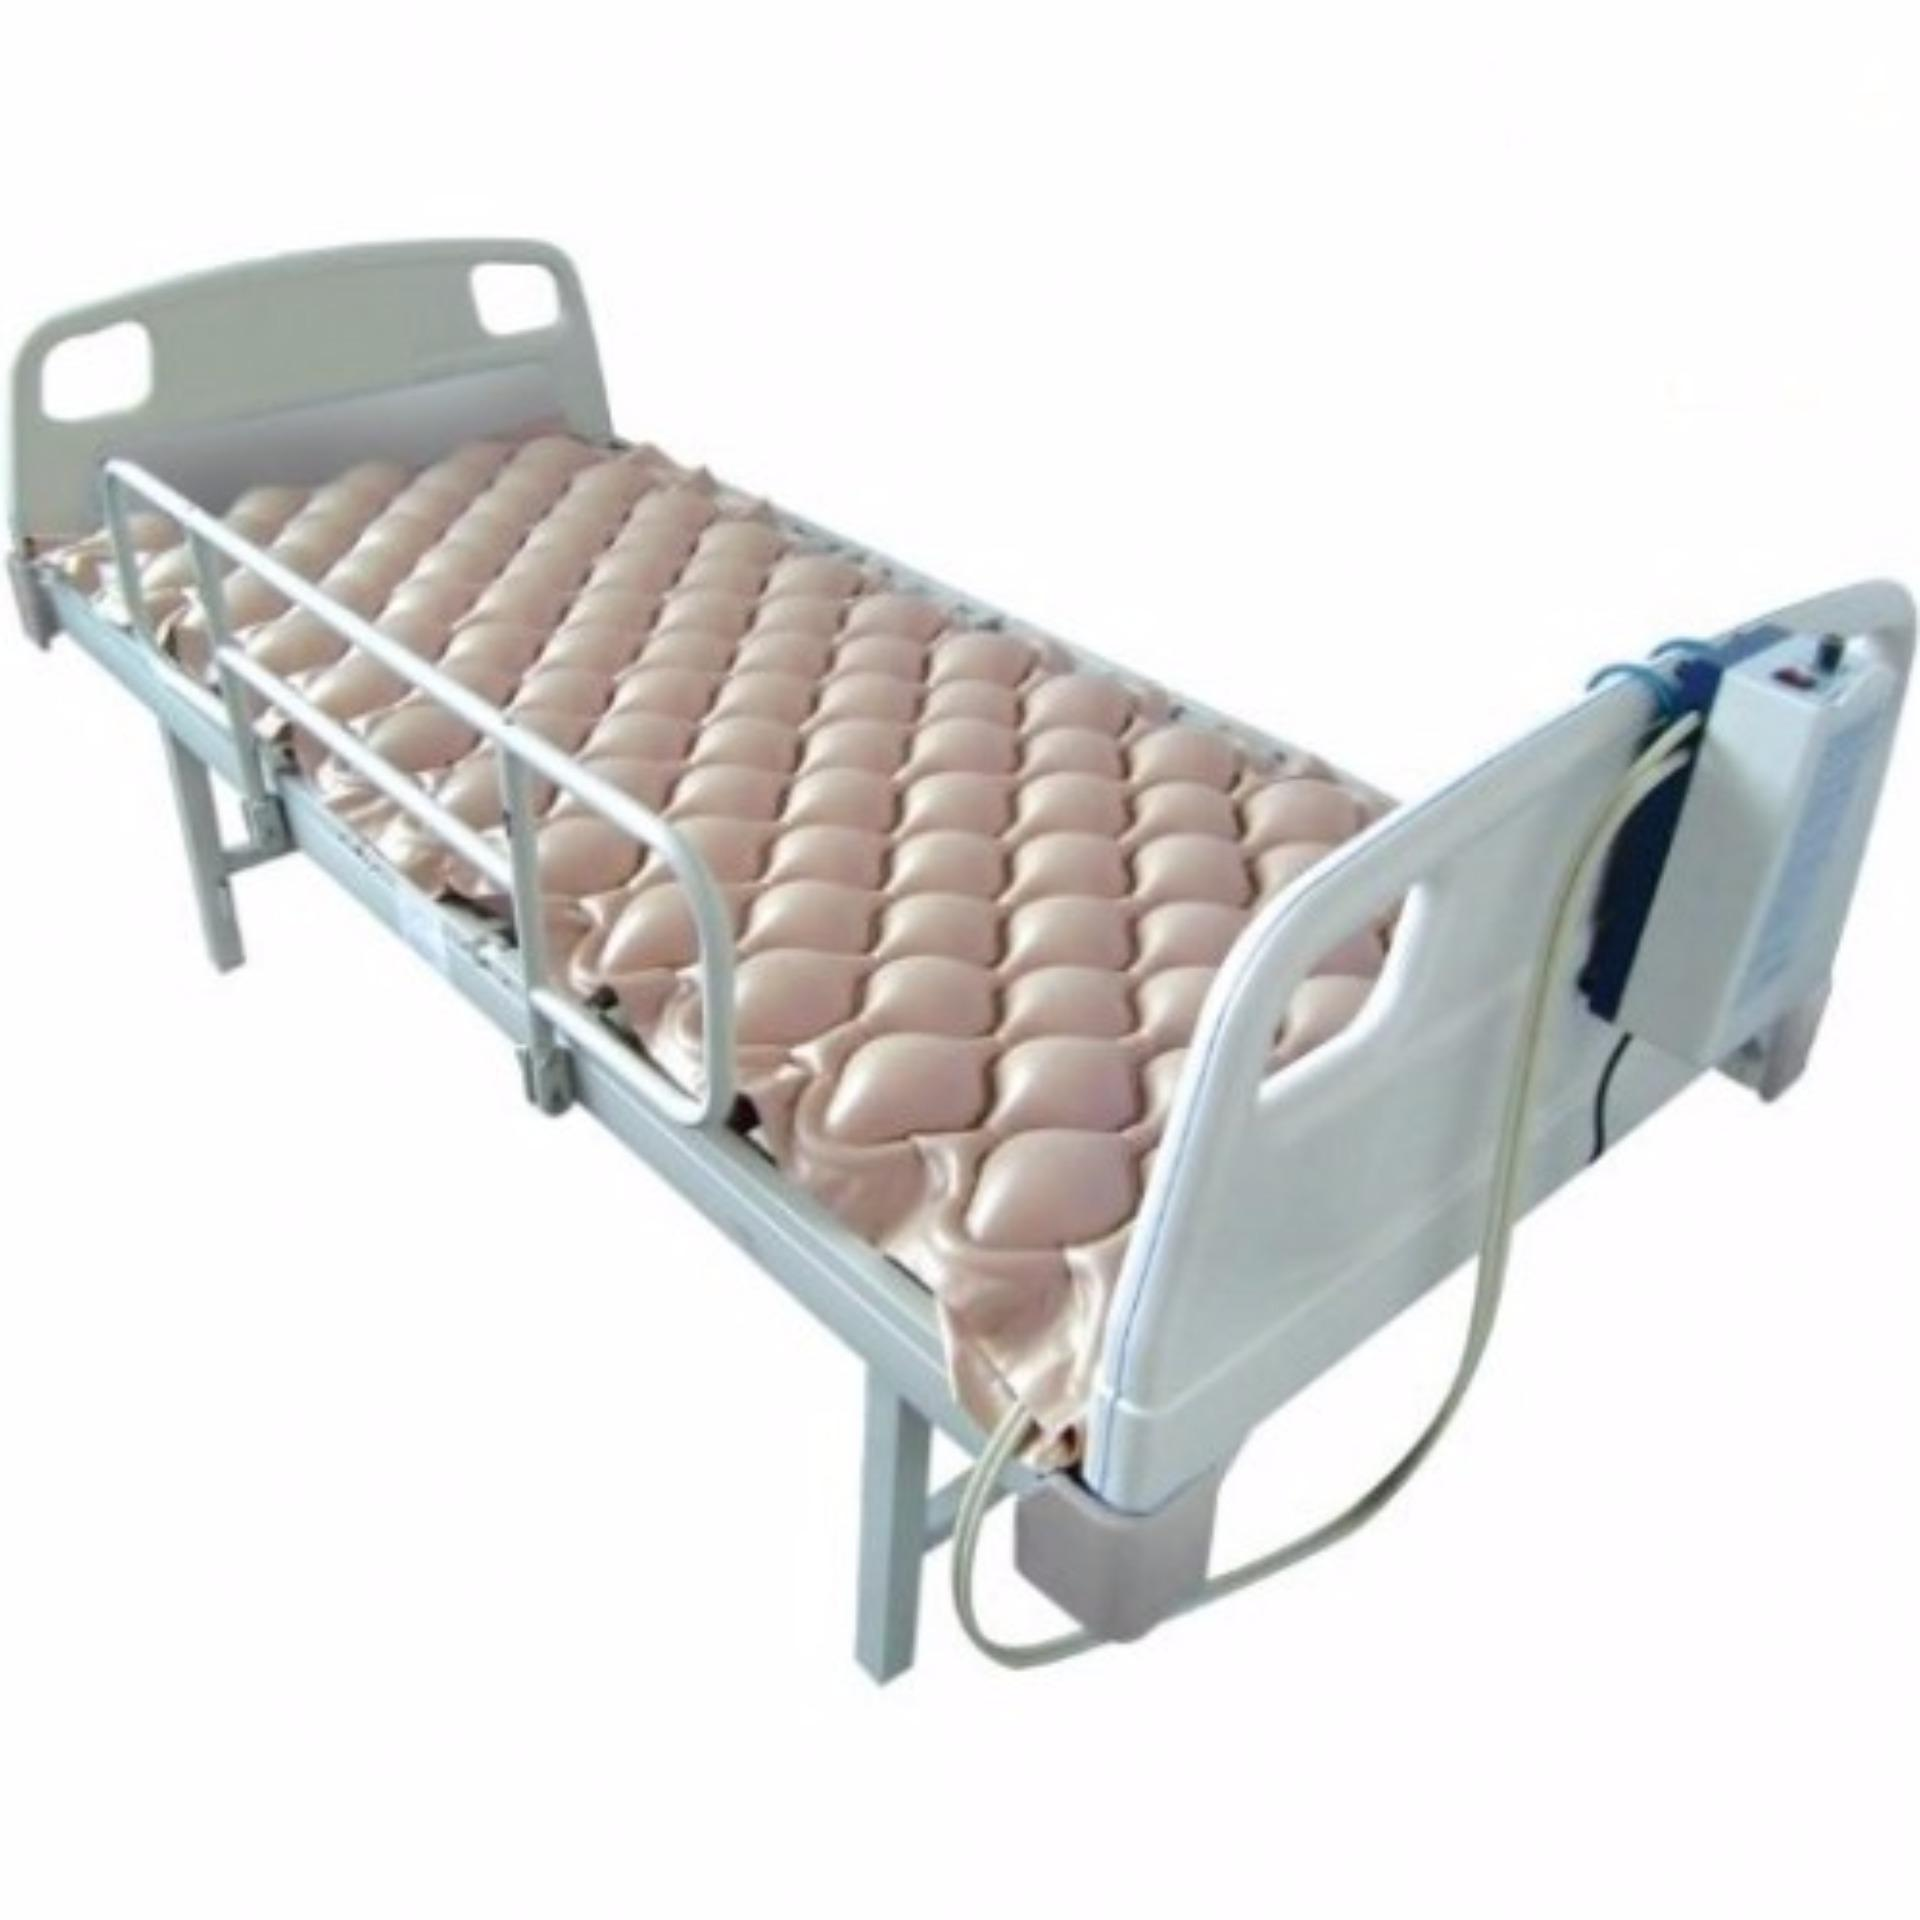 Image result for anti-bedsore mattresses